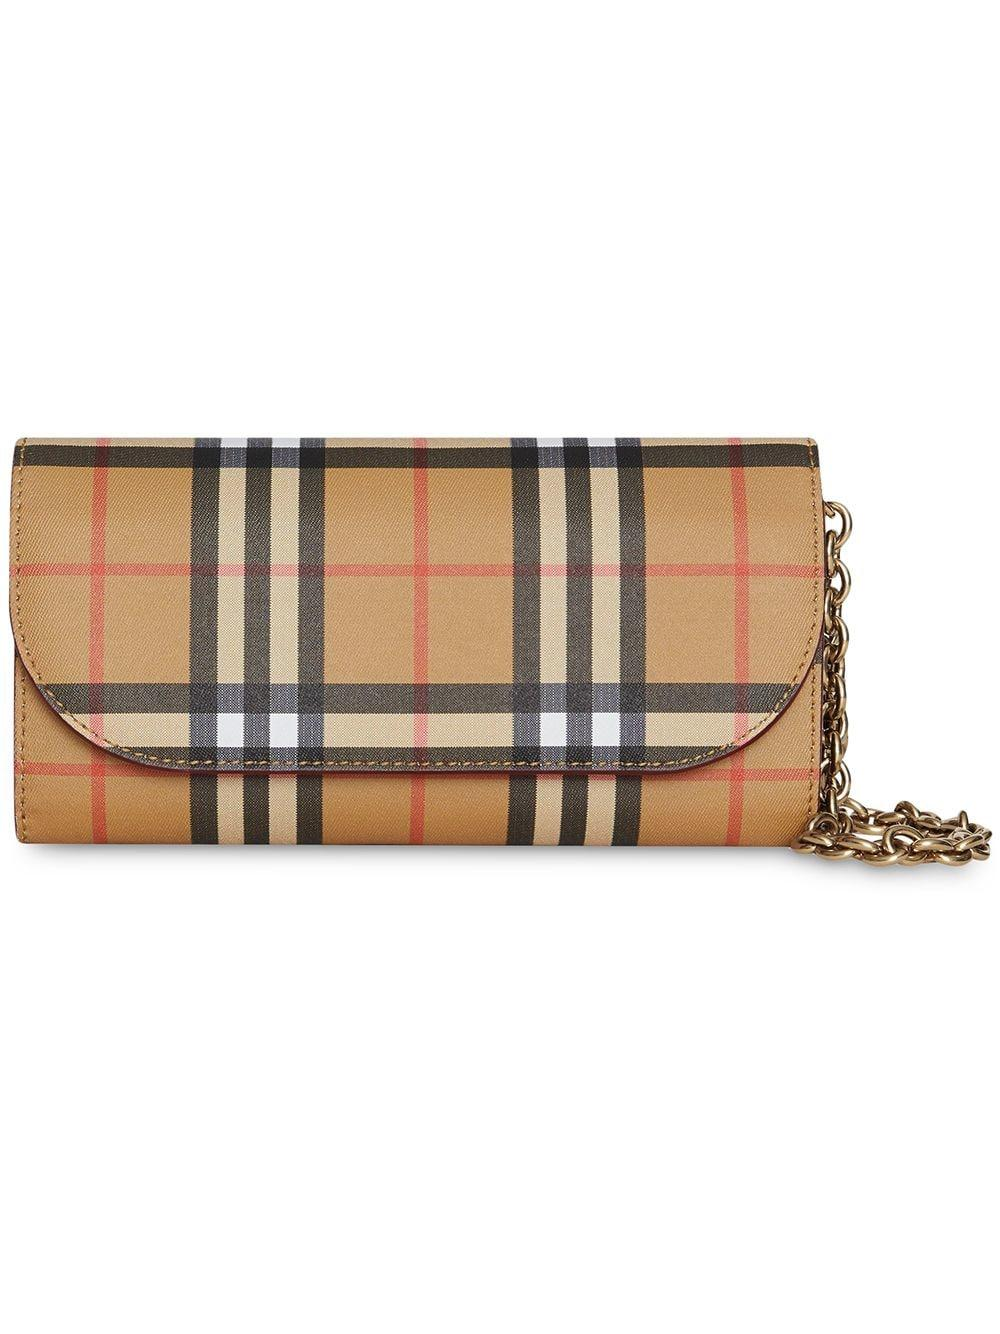 ba459c44bf67 Lyst - Burberry Henley Leather Wallet On Chain in Red - Save ...